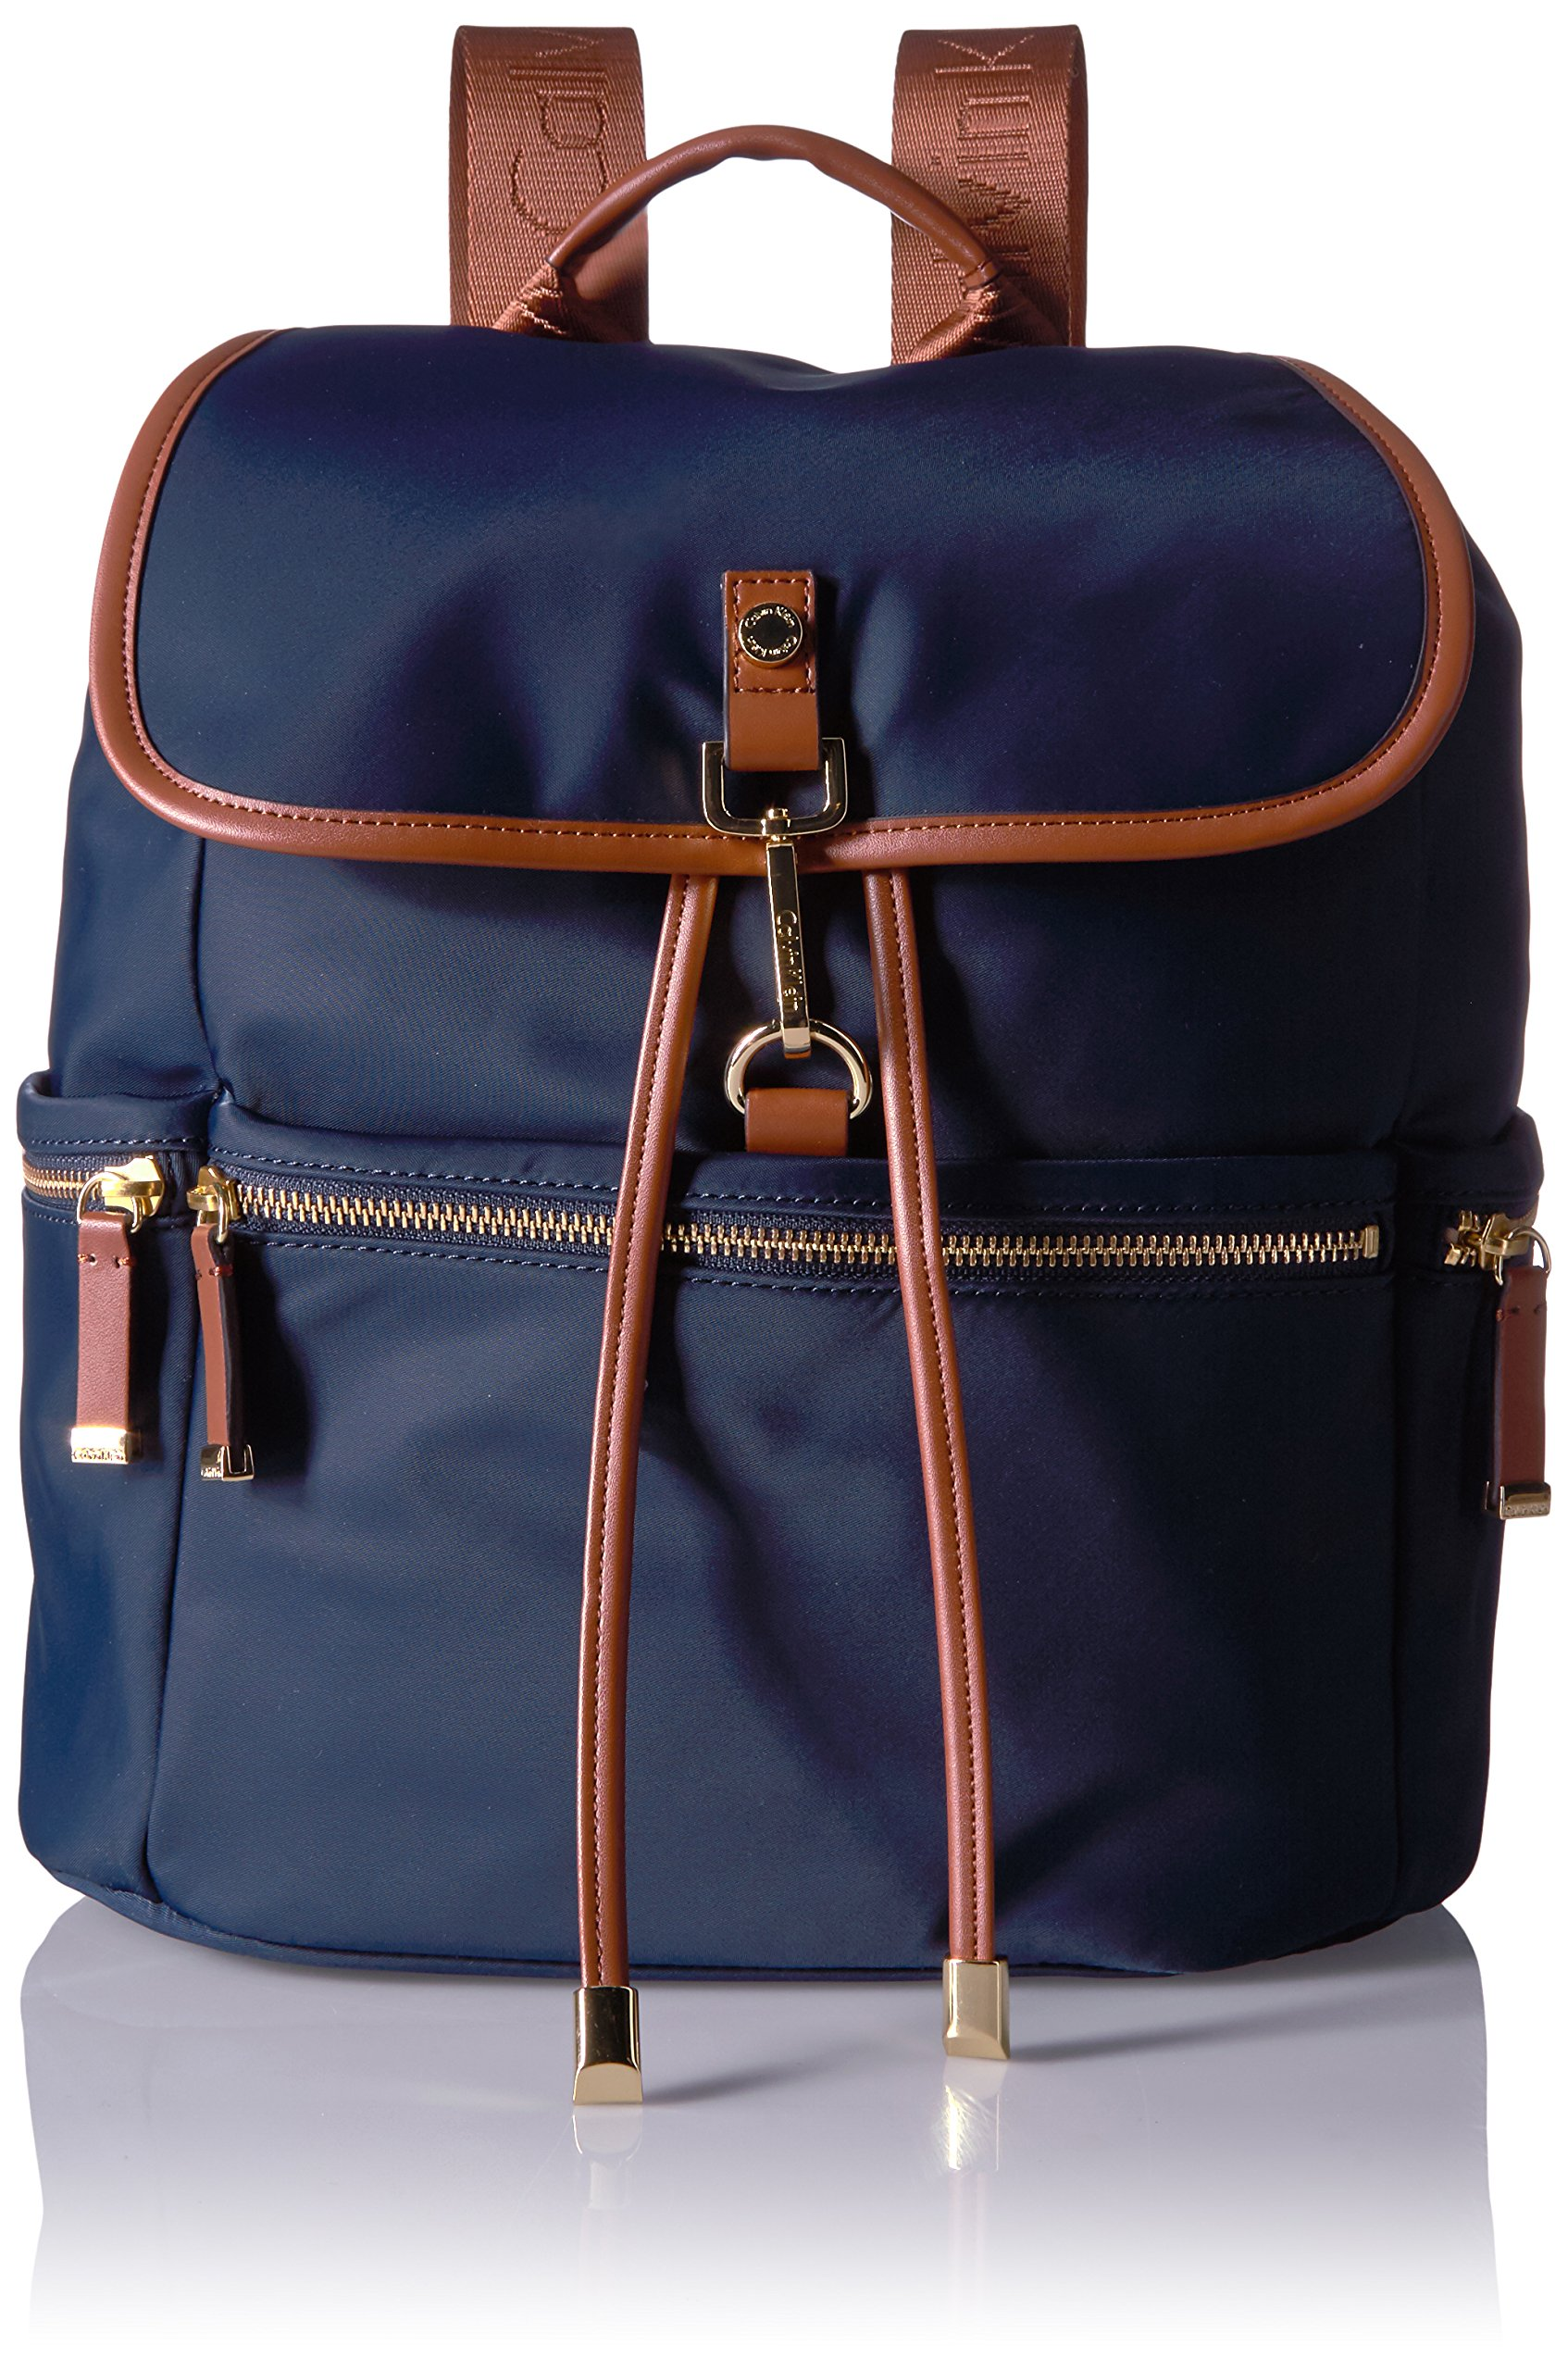 Calvin Klein Lianna Nylon Flap Over Backpack Shoulder Bag, NAVY, One Size